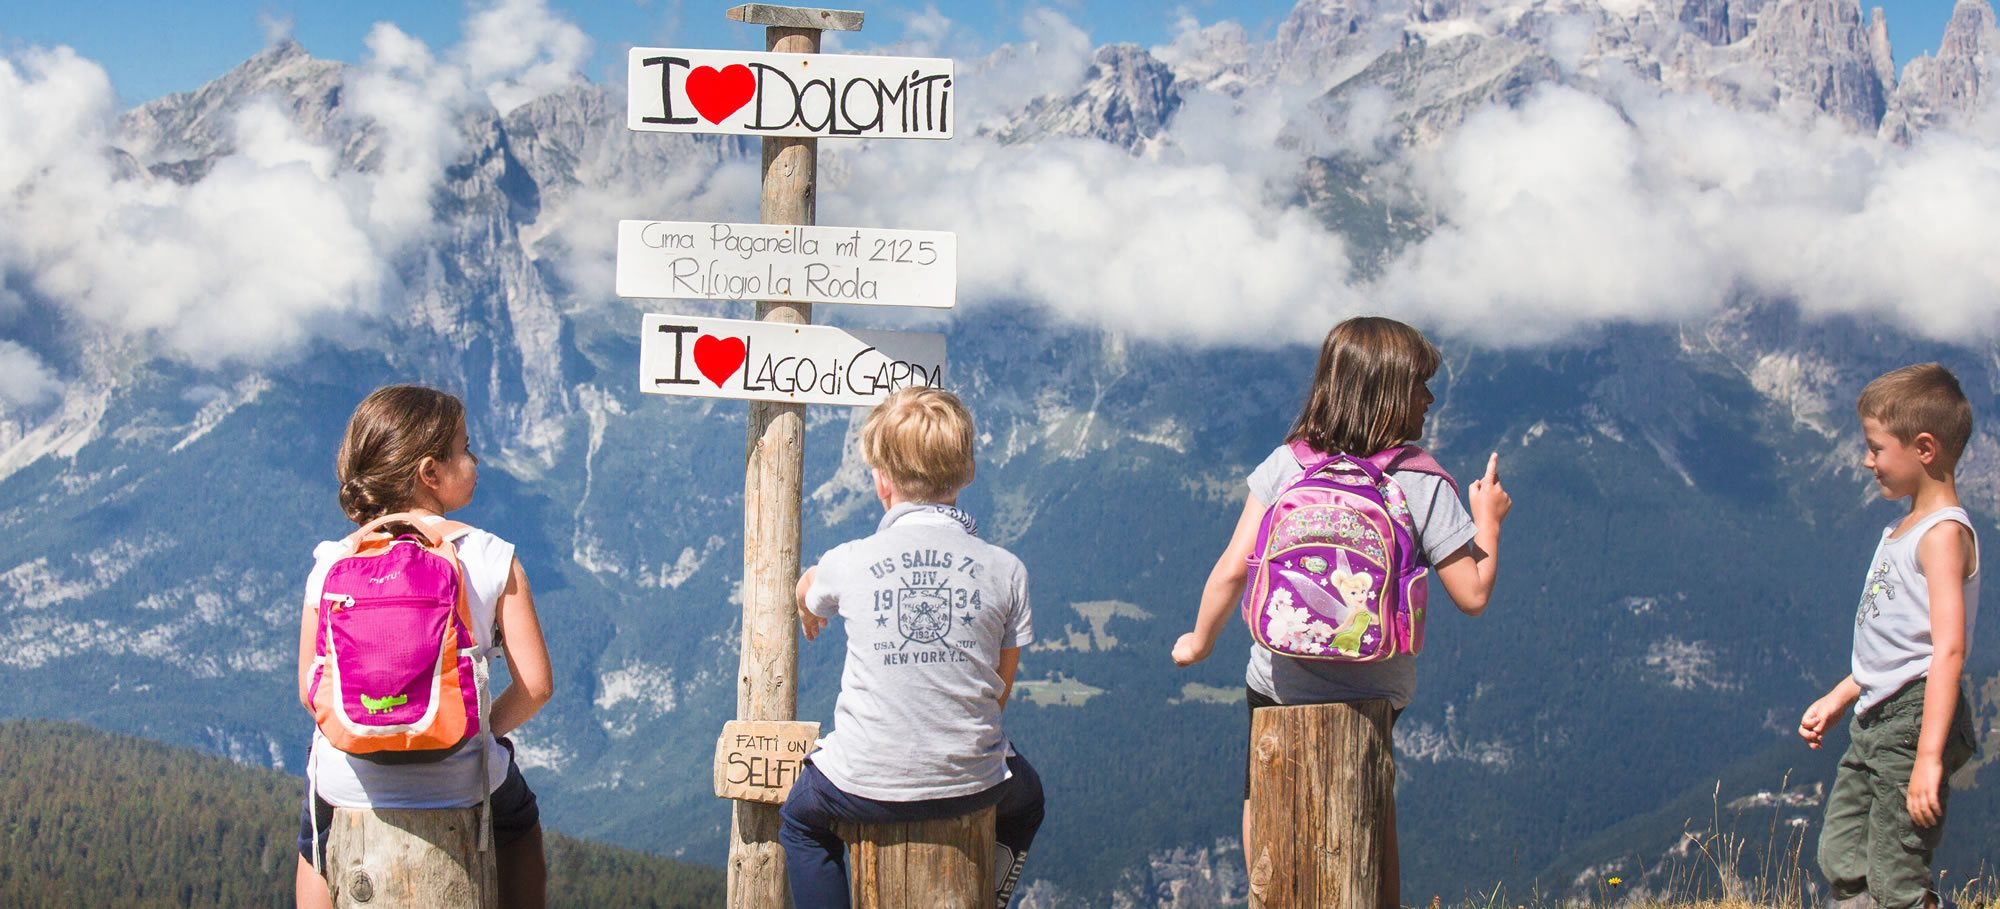 http://www.mtbcult.it/wp-content/uploads/2018/04/andalo-famiglie.jpg